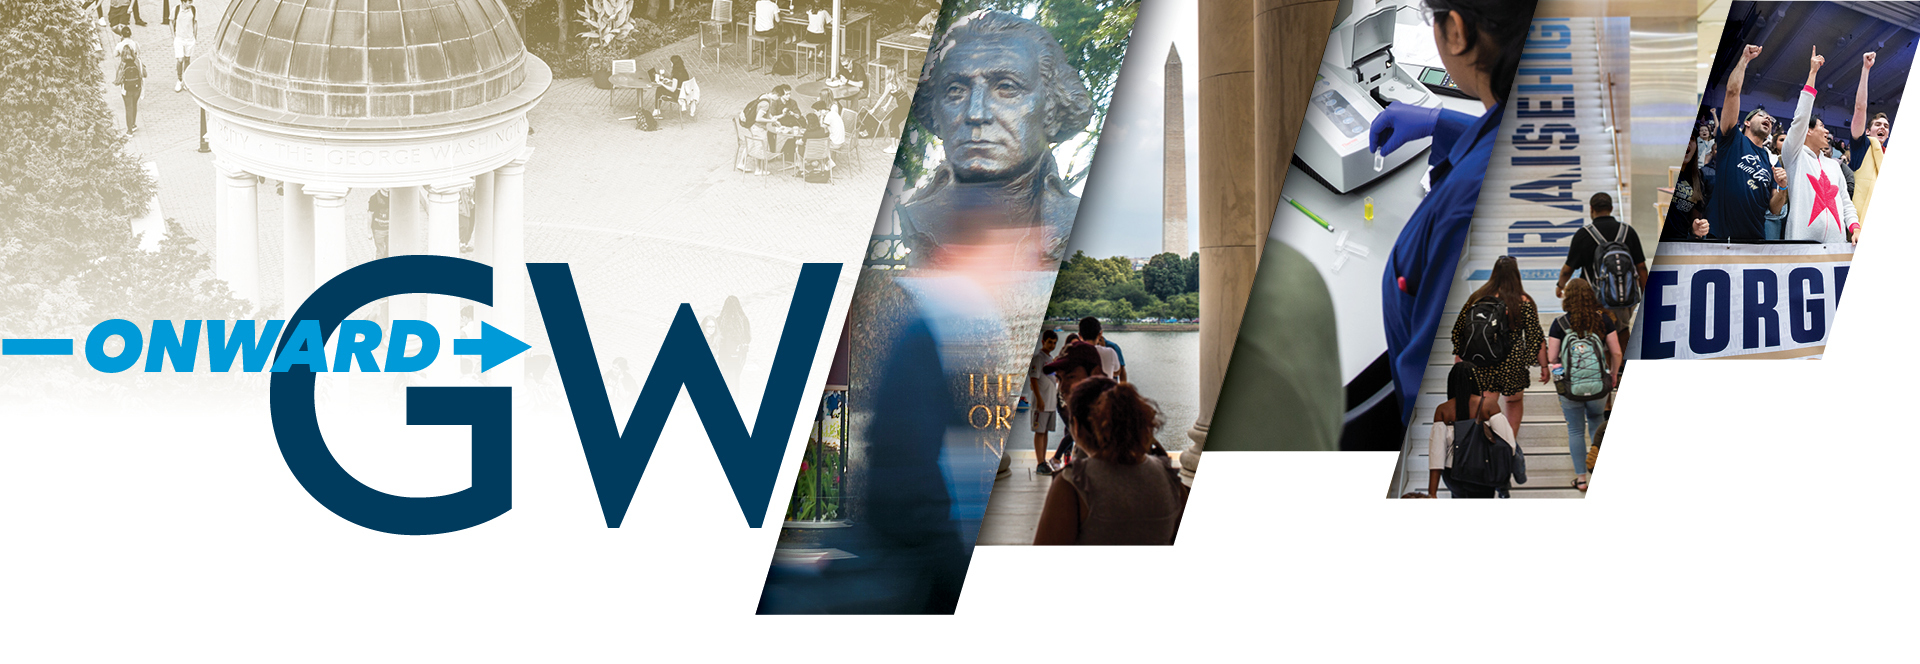 The Corcoran is excited to welcome students, faculty and staff to campus this fall. Learn more about the steps GW and the Corcoran are taking to prepare for your arrival to campus, including updating our public health protocols and reviewing and updating our buildings and classrooms.